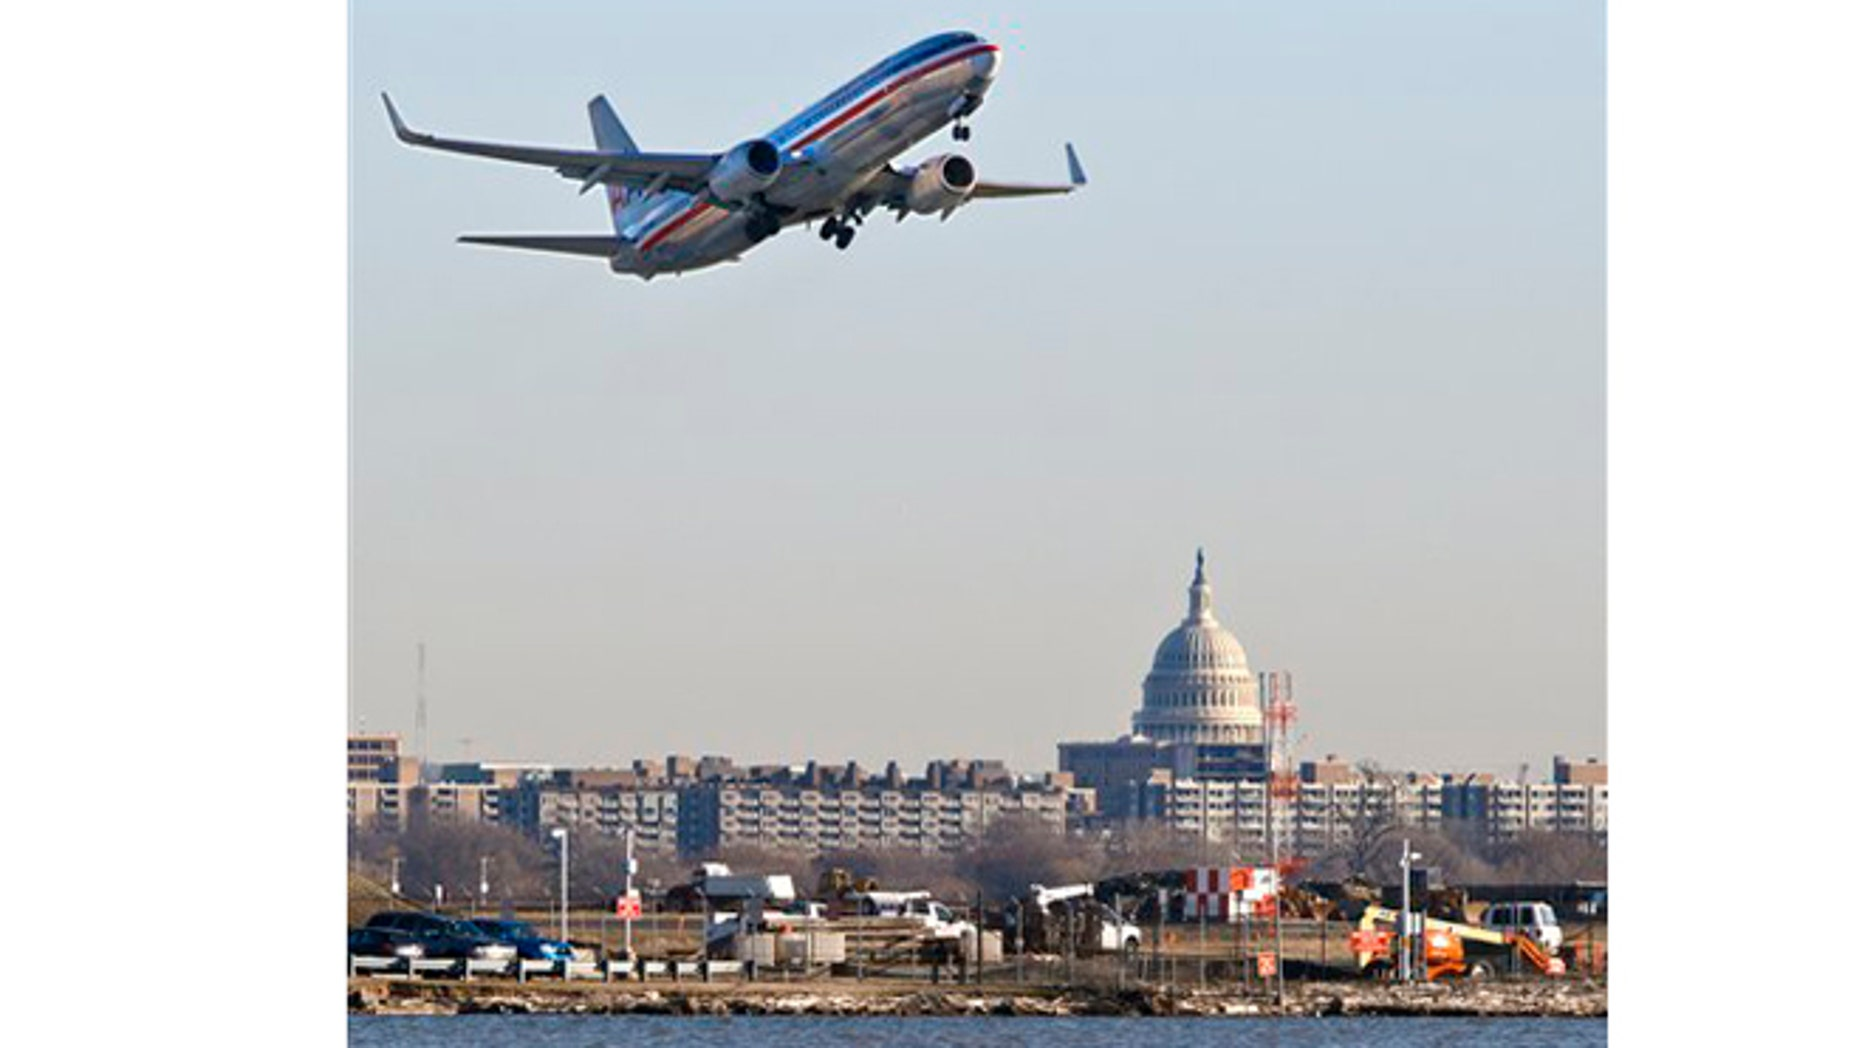 Feb. 23, 2012: An American Airlines jet takes off from Reagan National Airport in Washington.